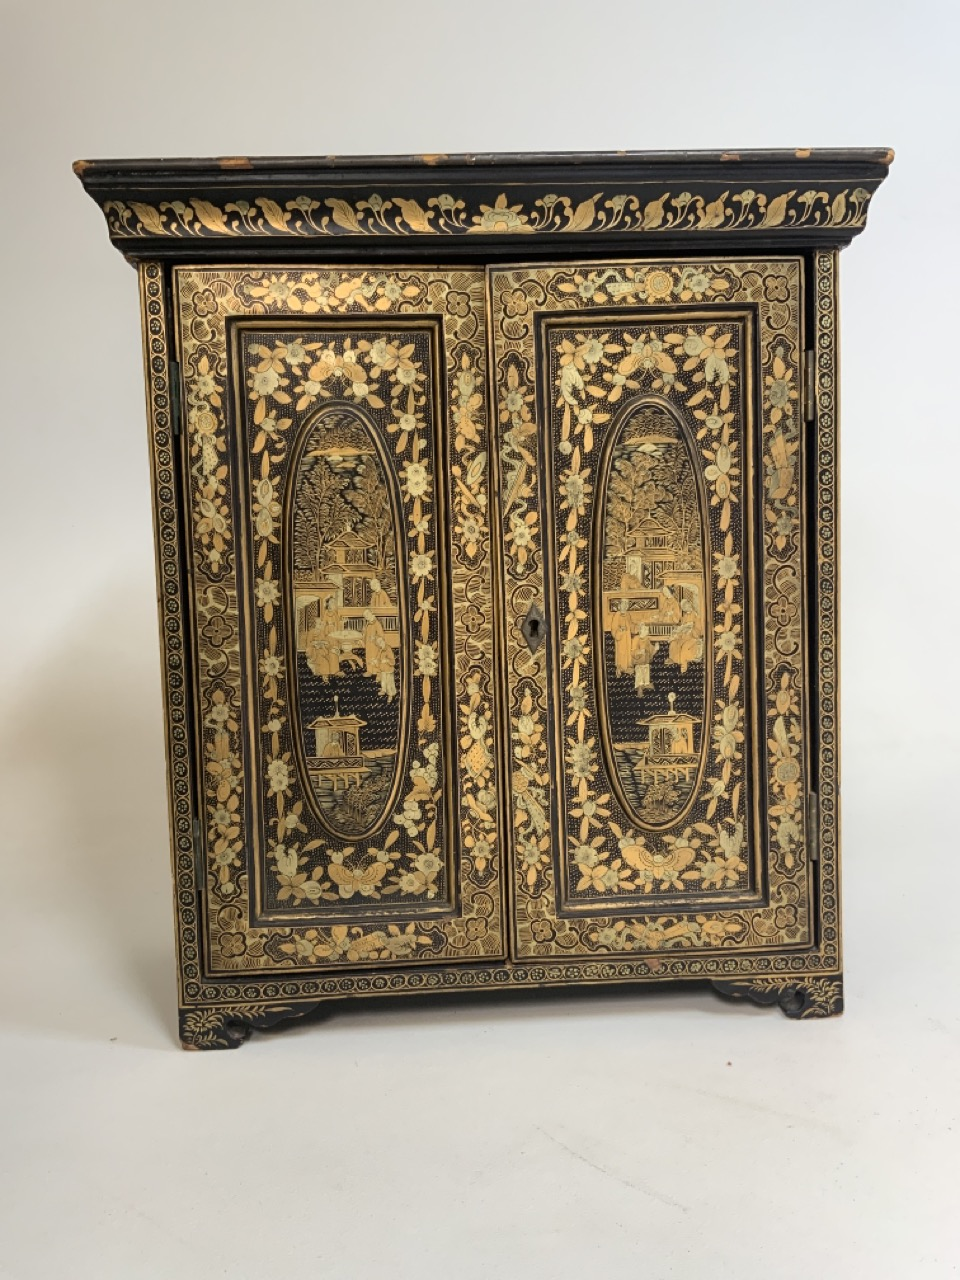 A black lacquered Japanese jewellery chest of five drawers with extensive gilt painted decoration